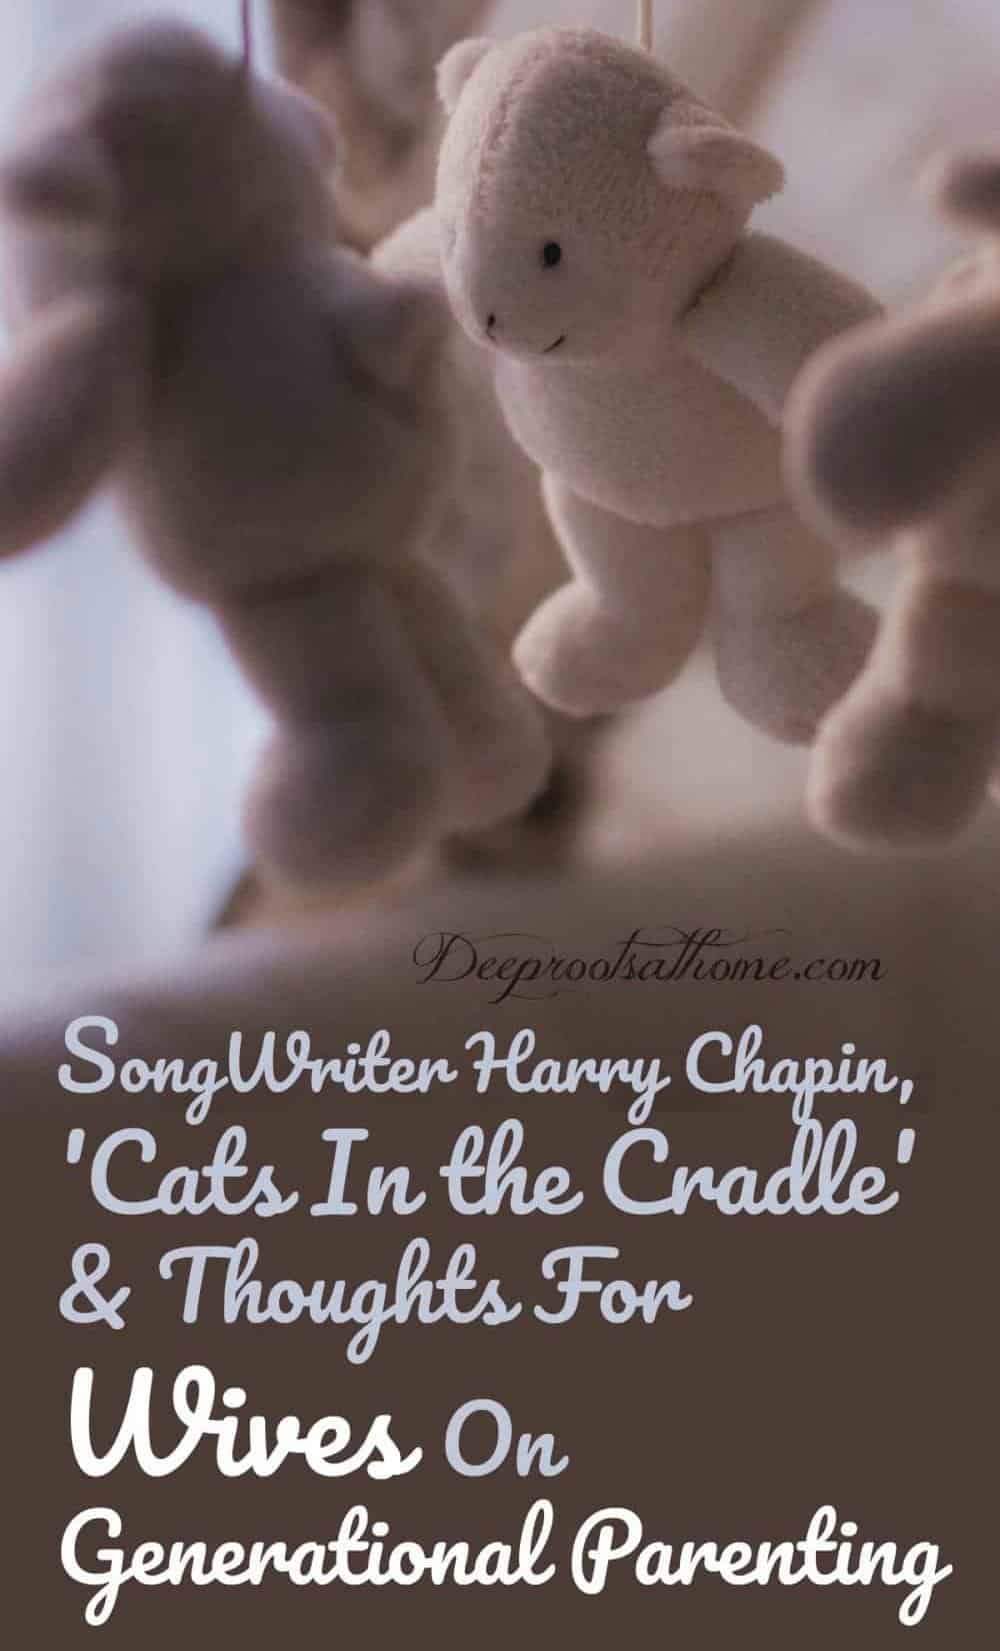 Harry Chapin, 'Cats In the Cradle' & Thoughts On Generational Parenting. A teddy bear mobile in baby nursery